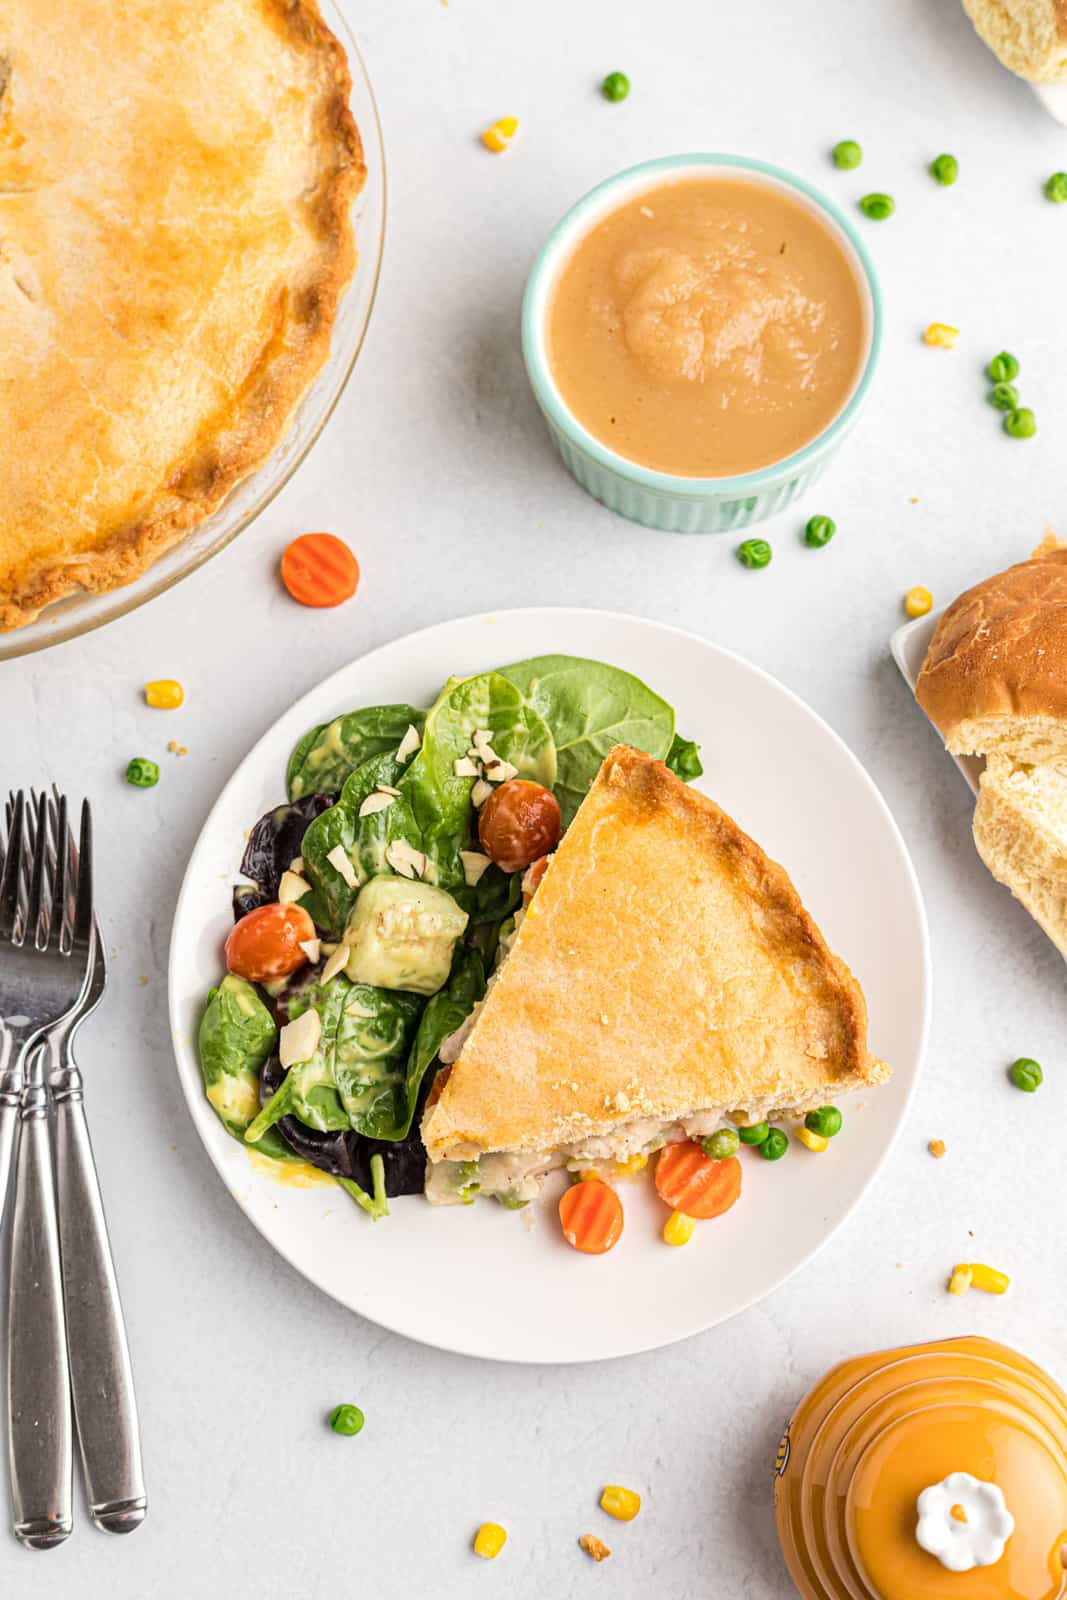 Overhead of pie on plate with salad